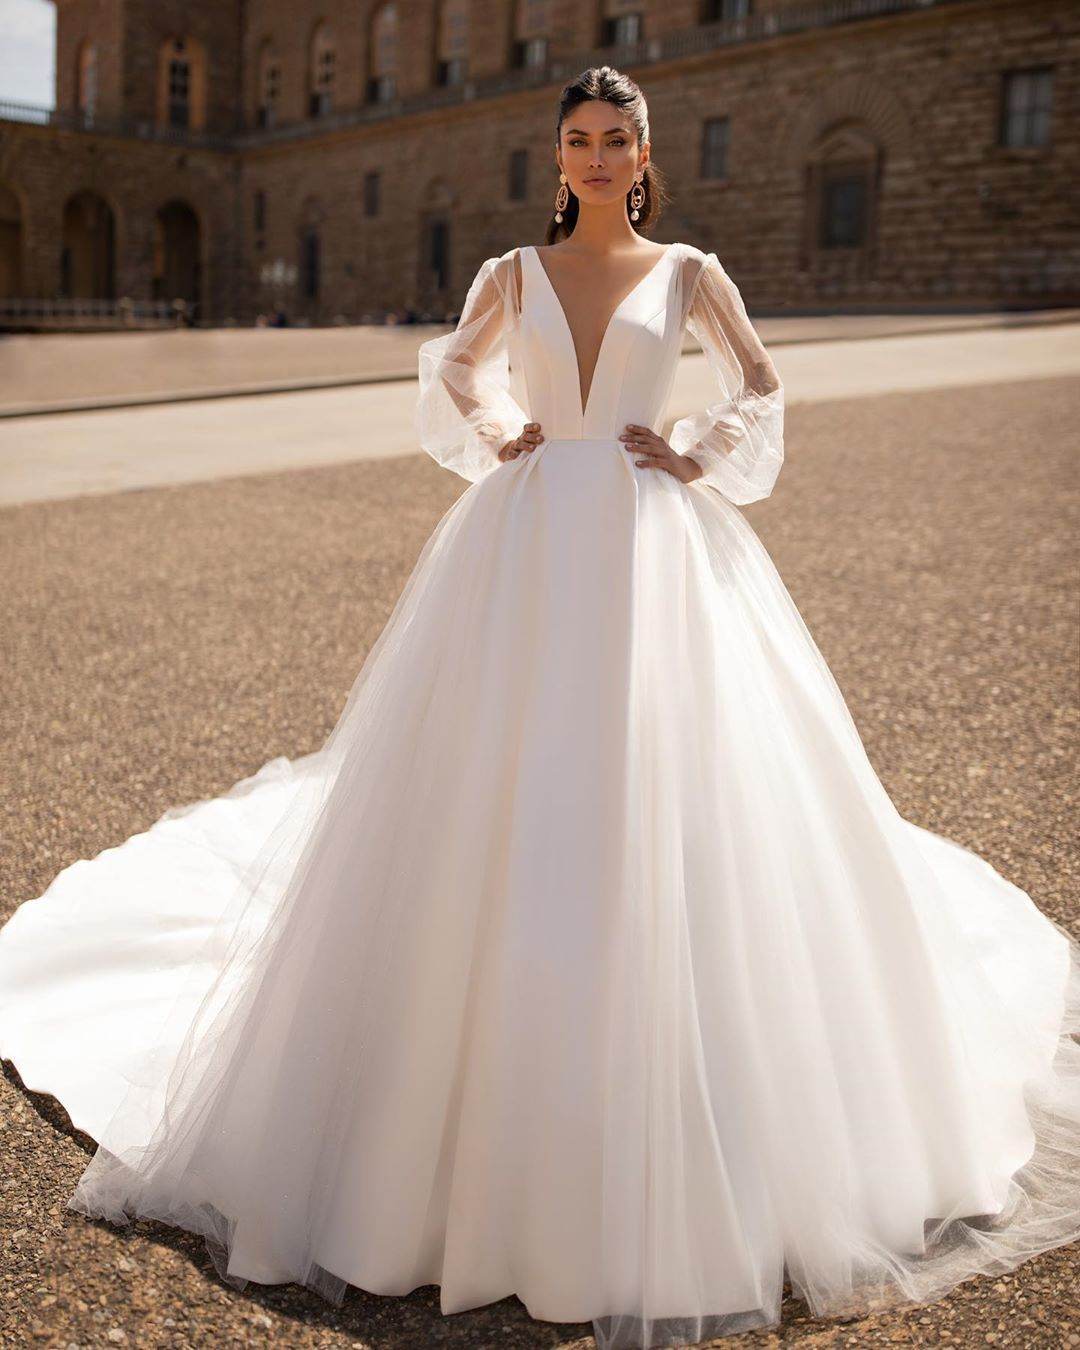 Milla Nova In 2020 Junior Bride Dresses Ball Gown Wedding Dress Alternative Bridesmaid Dresses